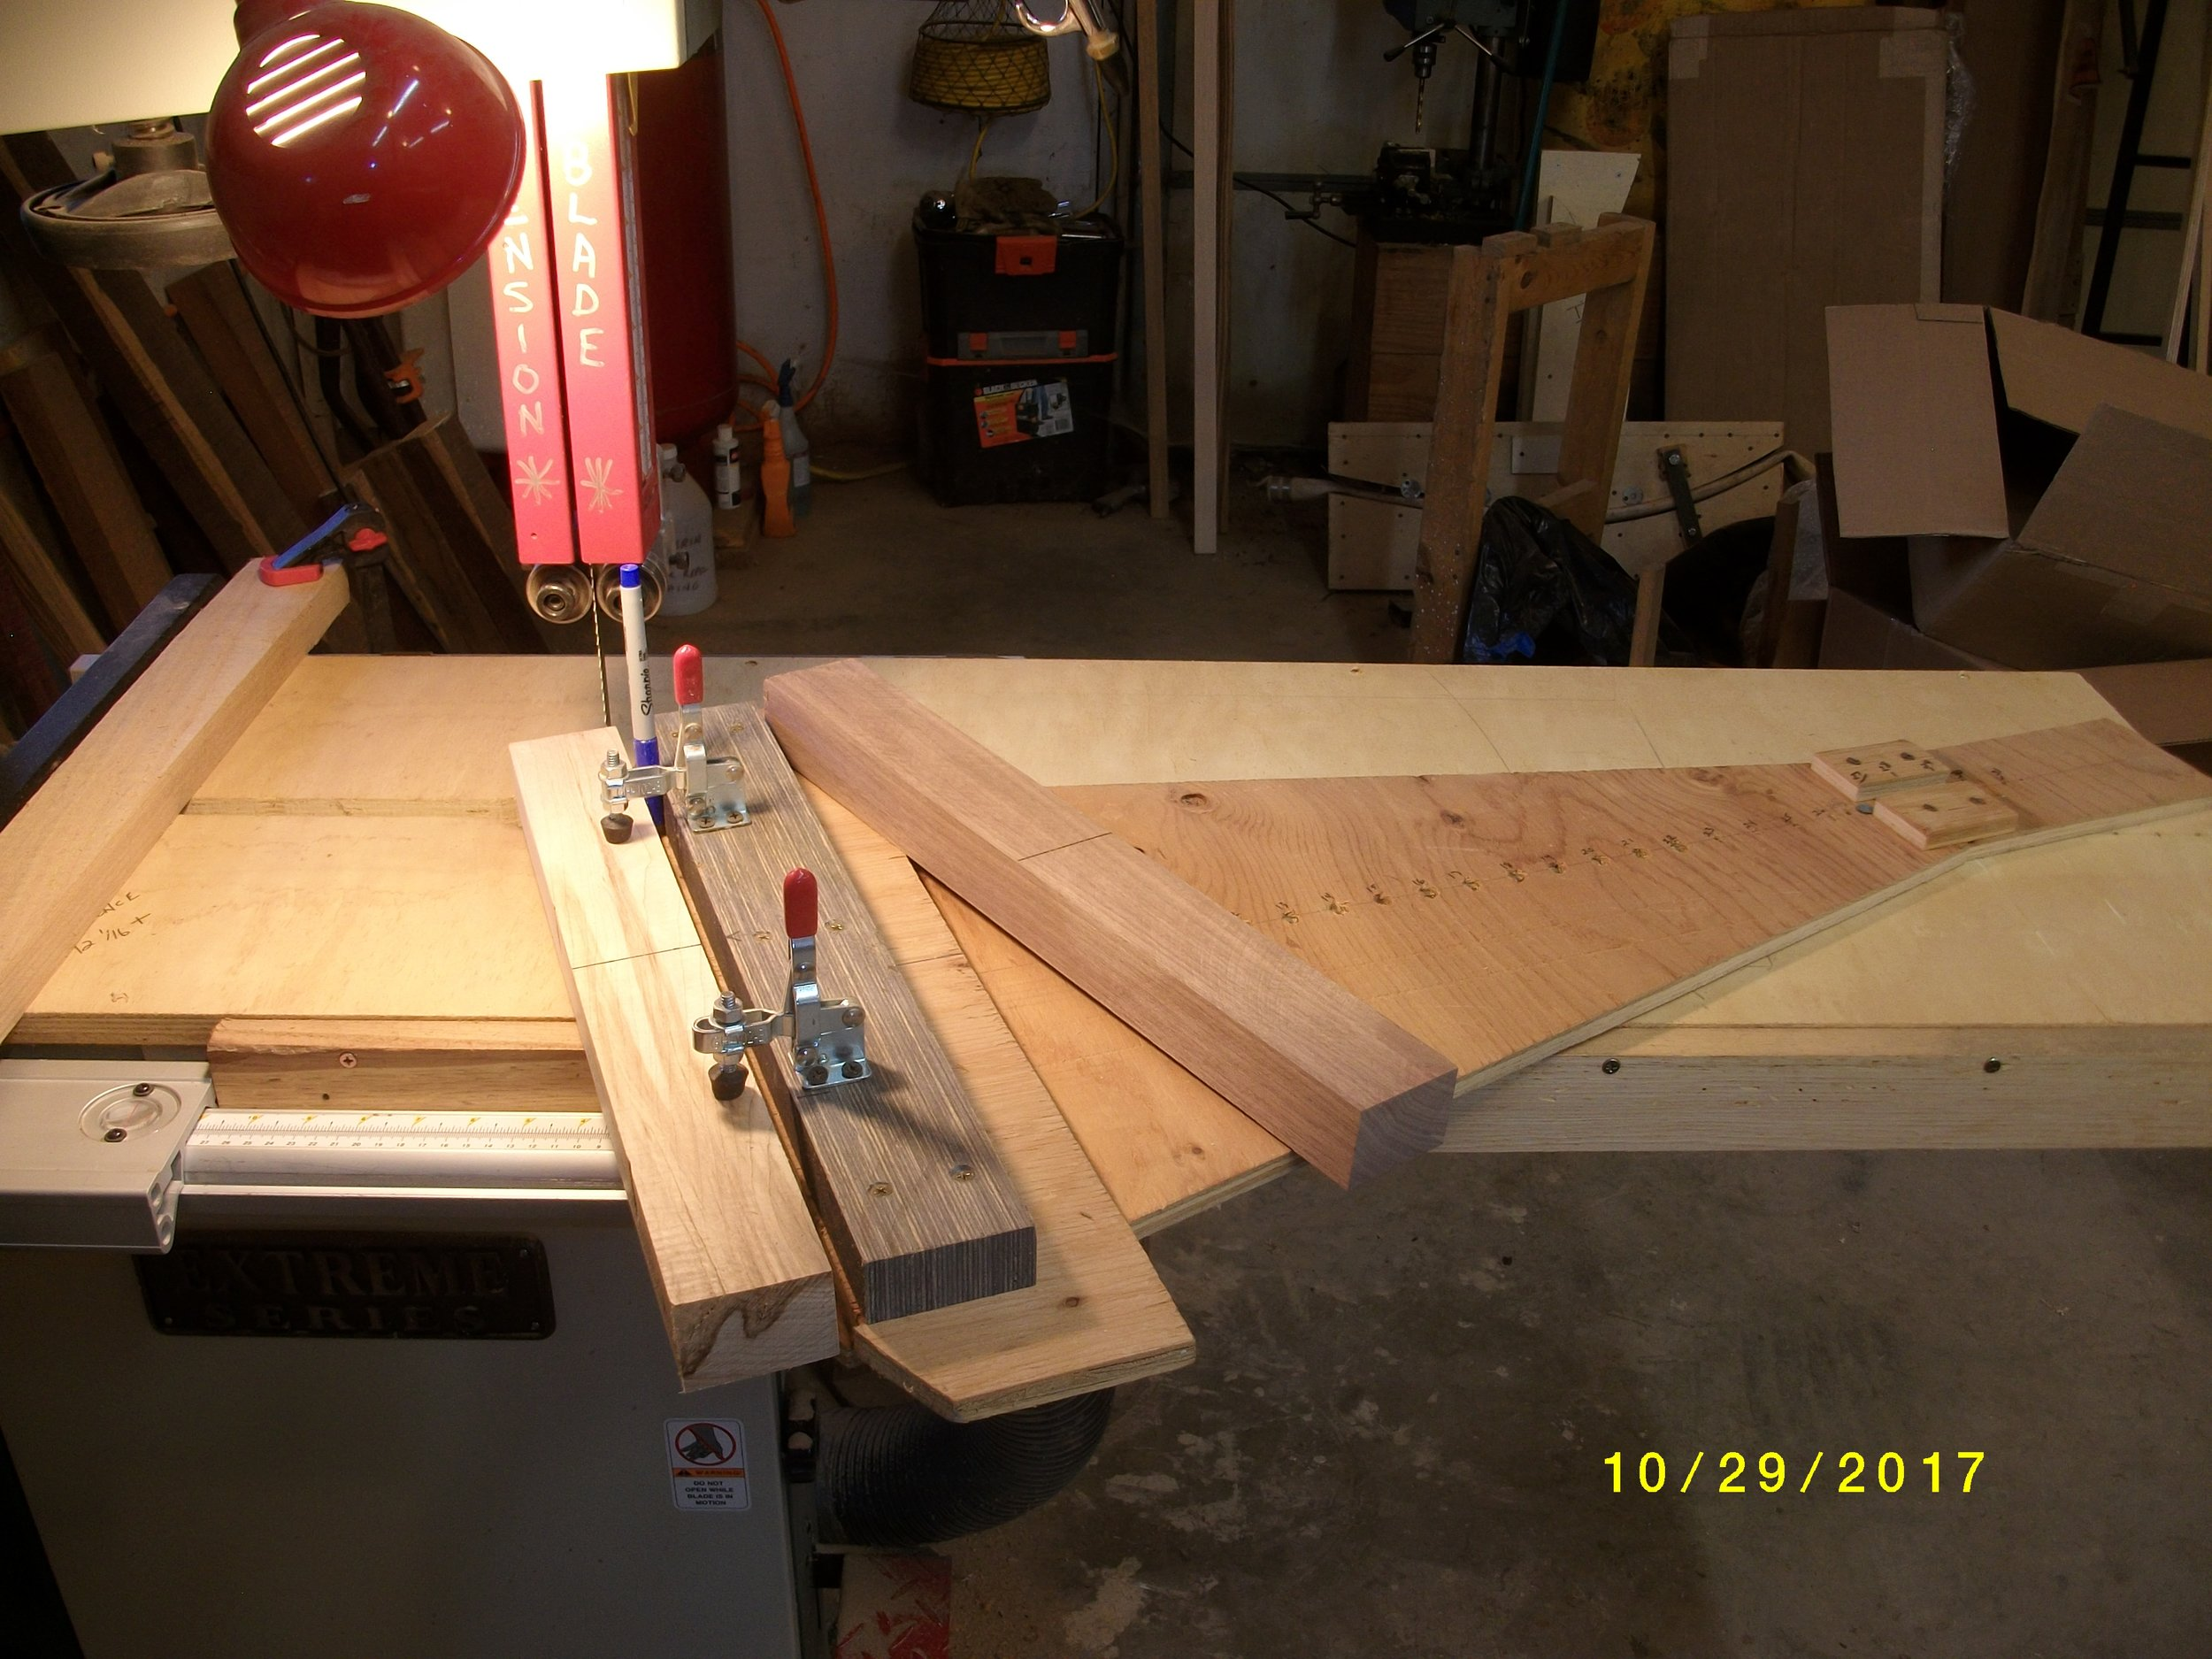 Here is my swing jig, I am going to cut an arc the same as bow back for some accents and two colors of riser wood.